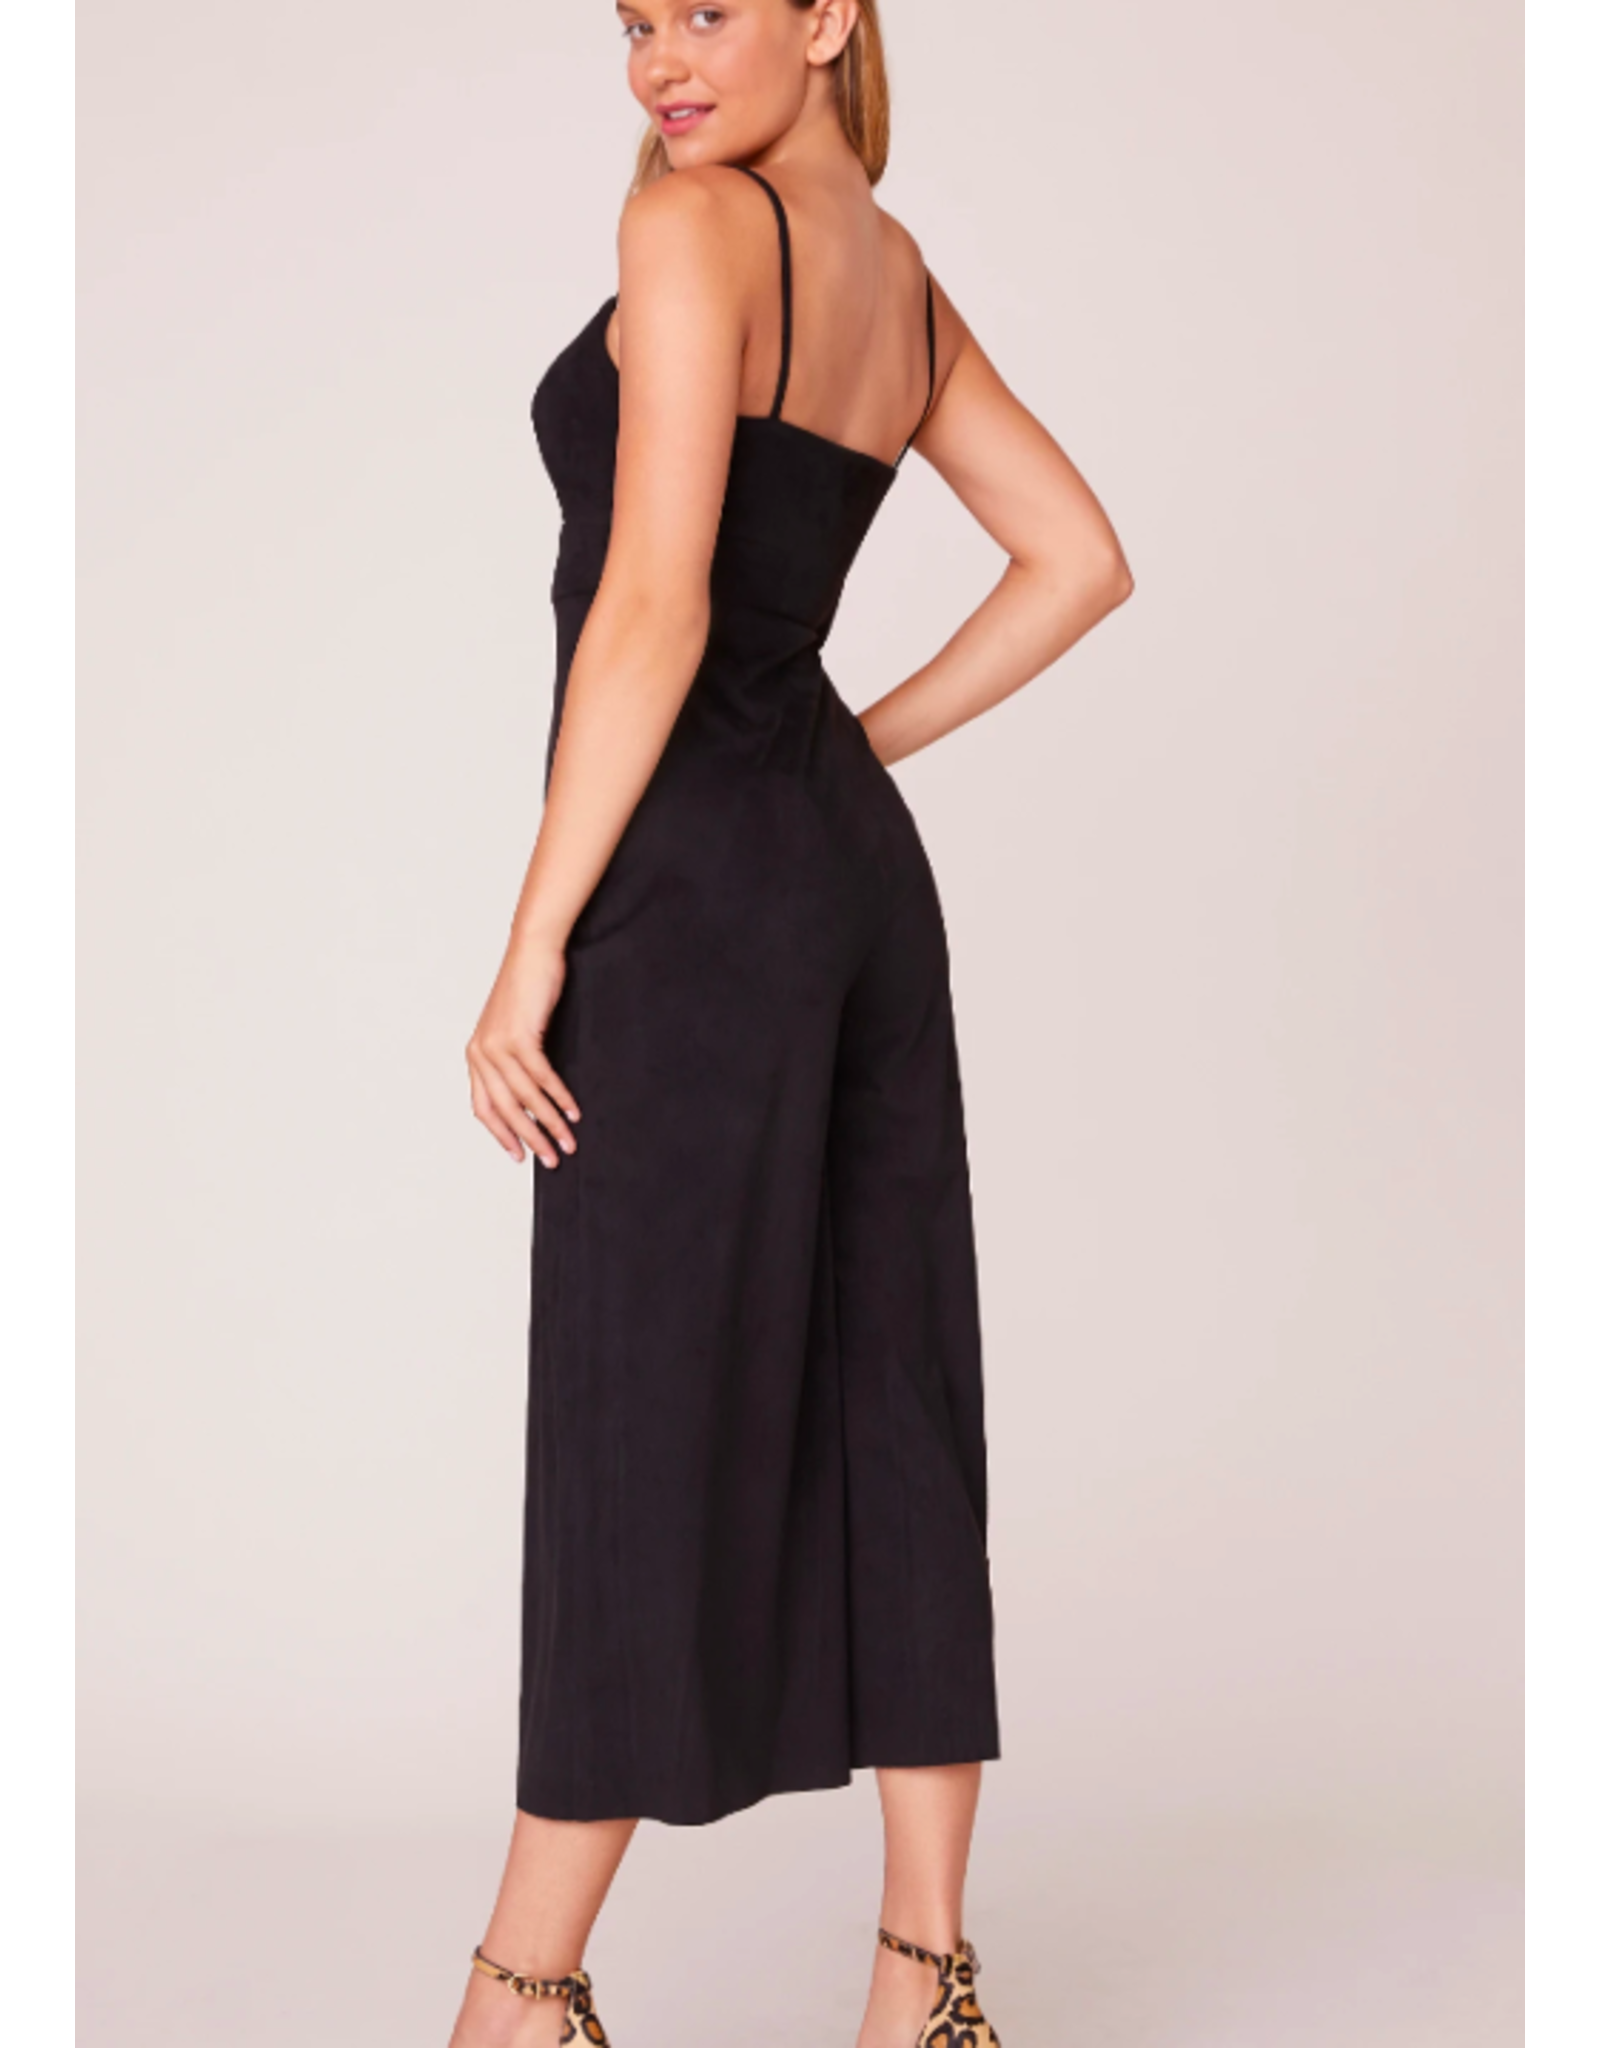 SUEDE BLACK JUMPSUIT